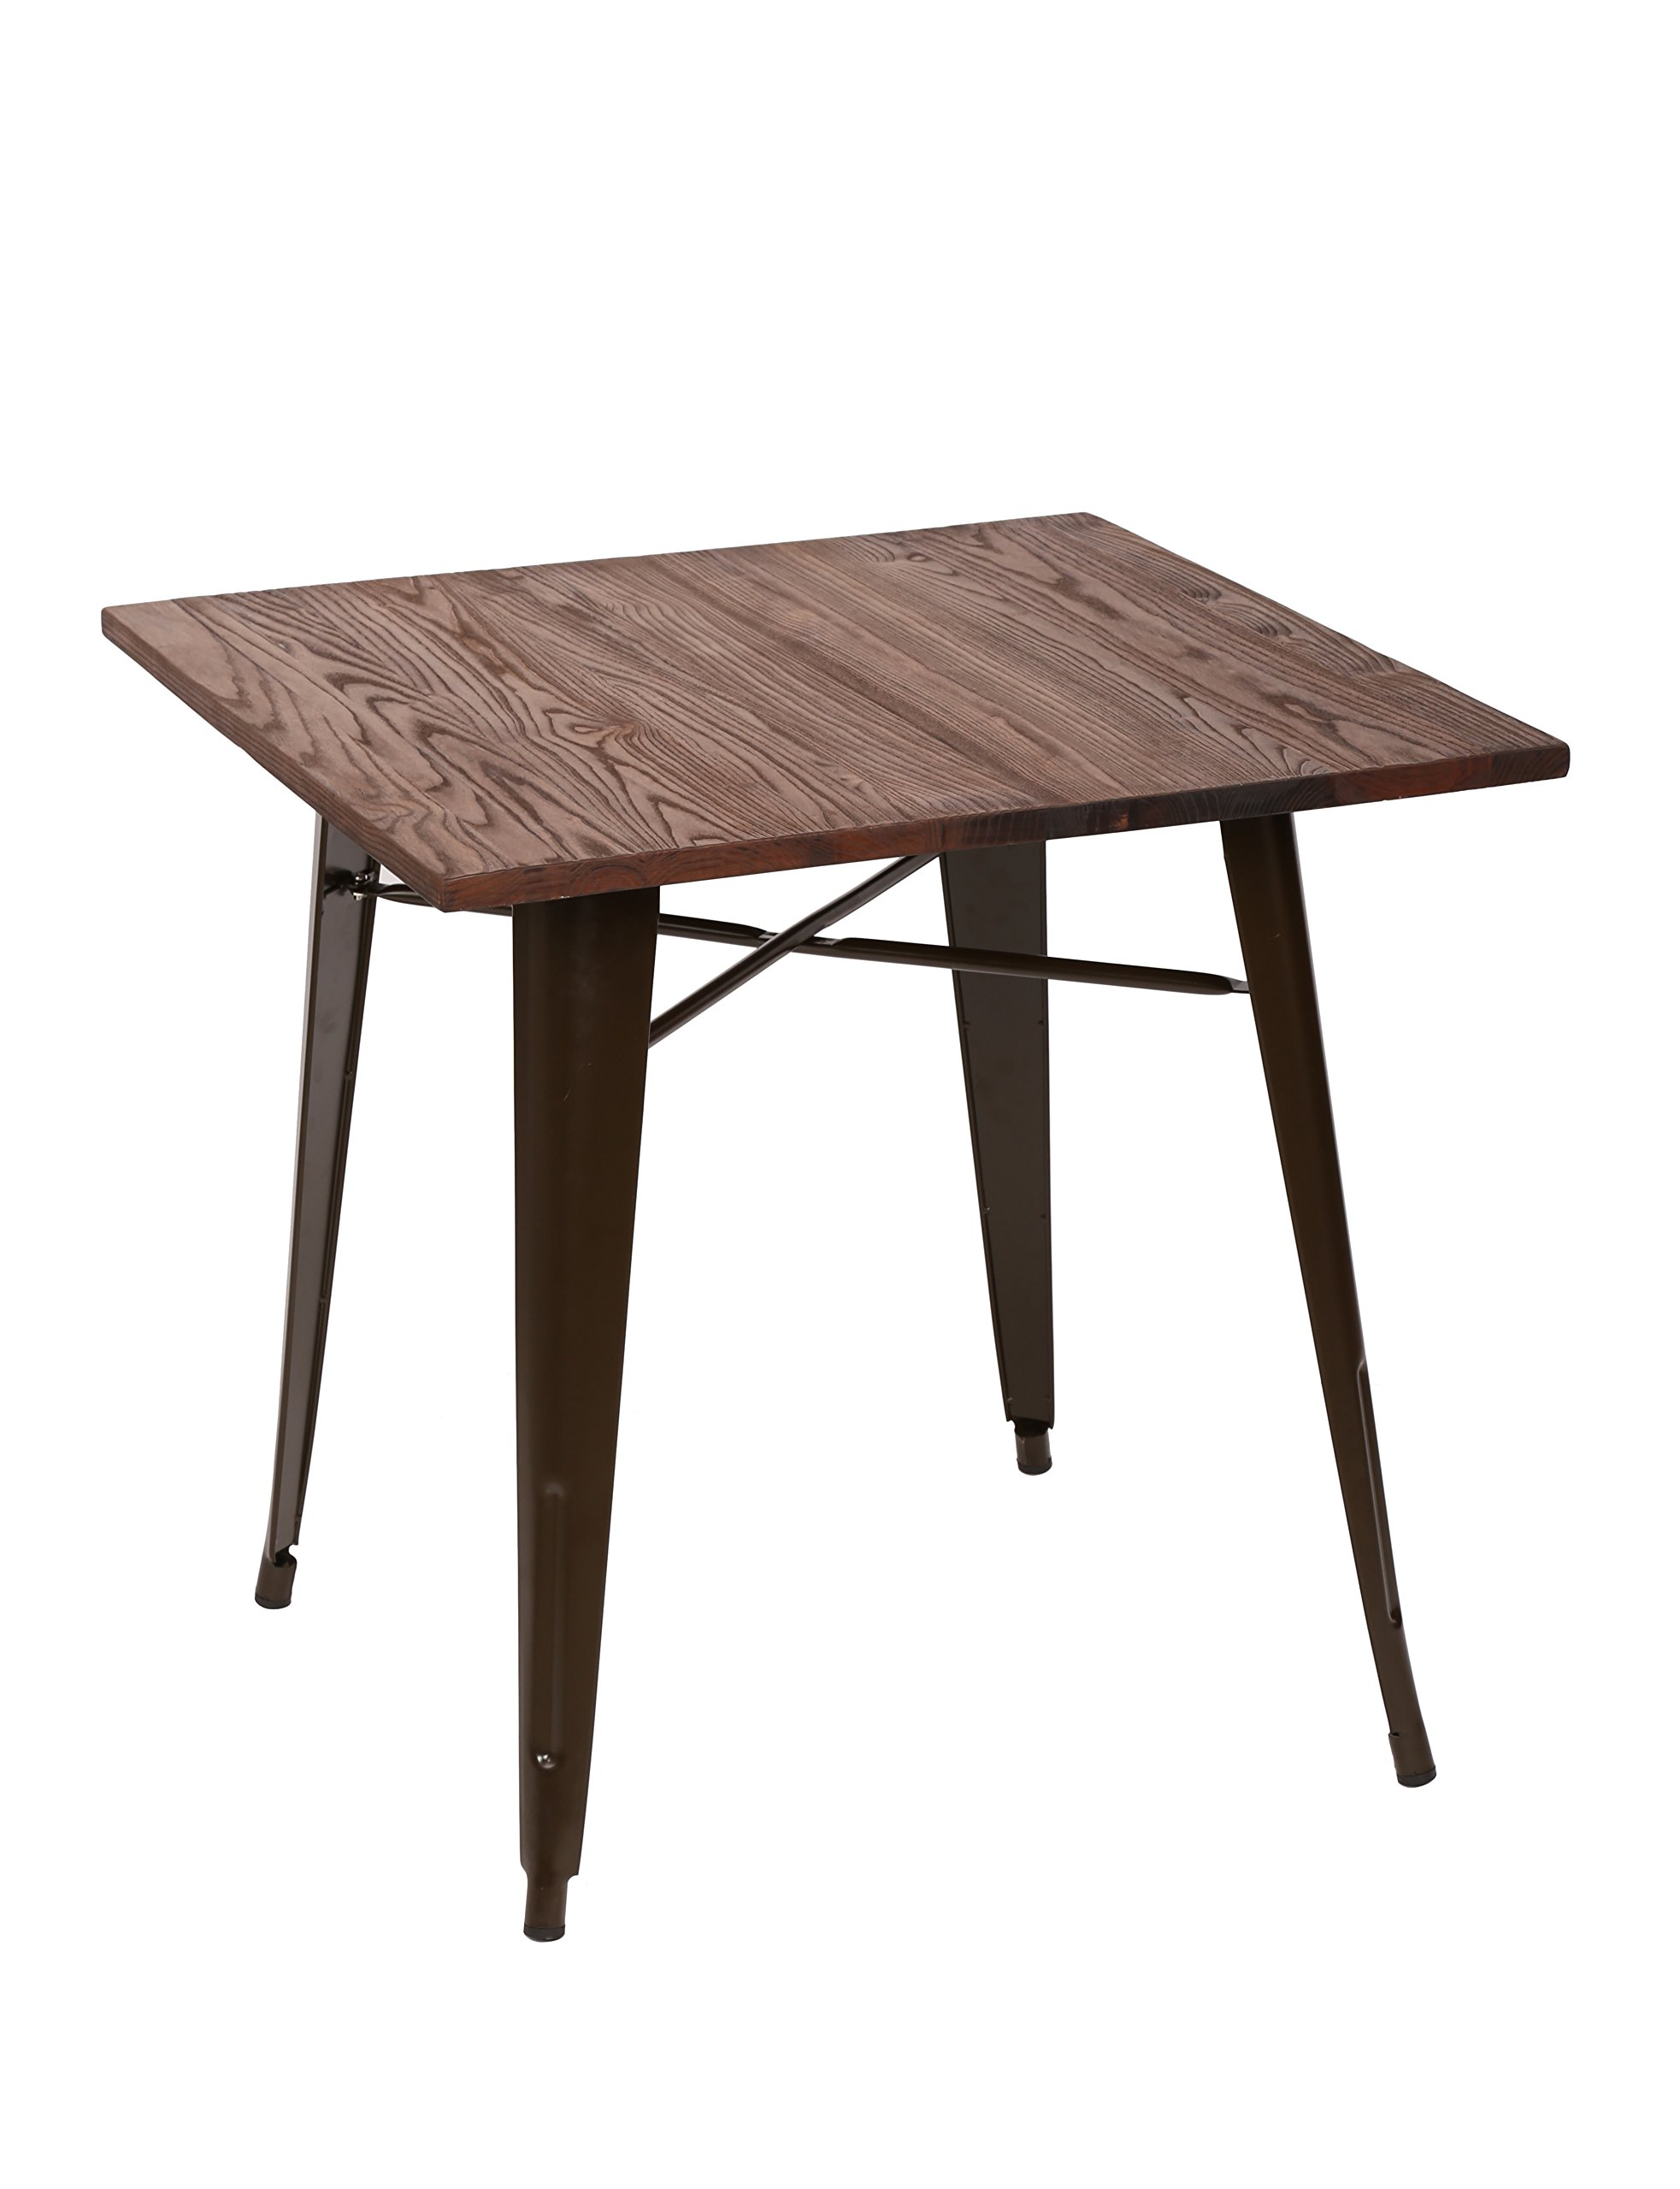 Fancyhouse Square Dining Table Wooden Top Bistro Cafe Table Parkland Pub Studio Collection